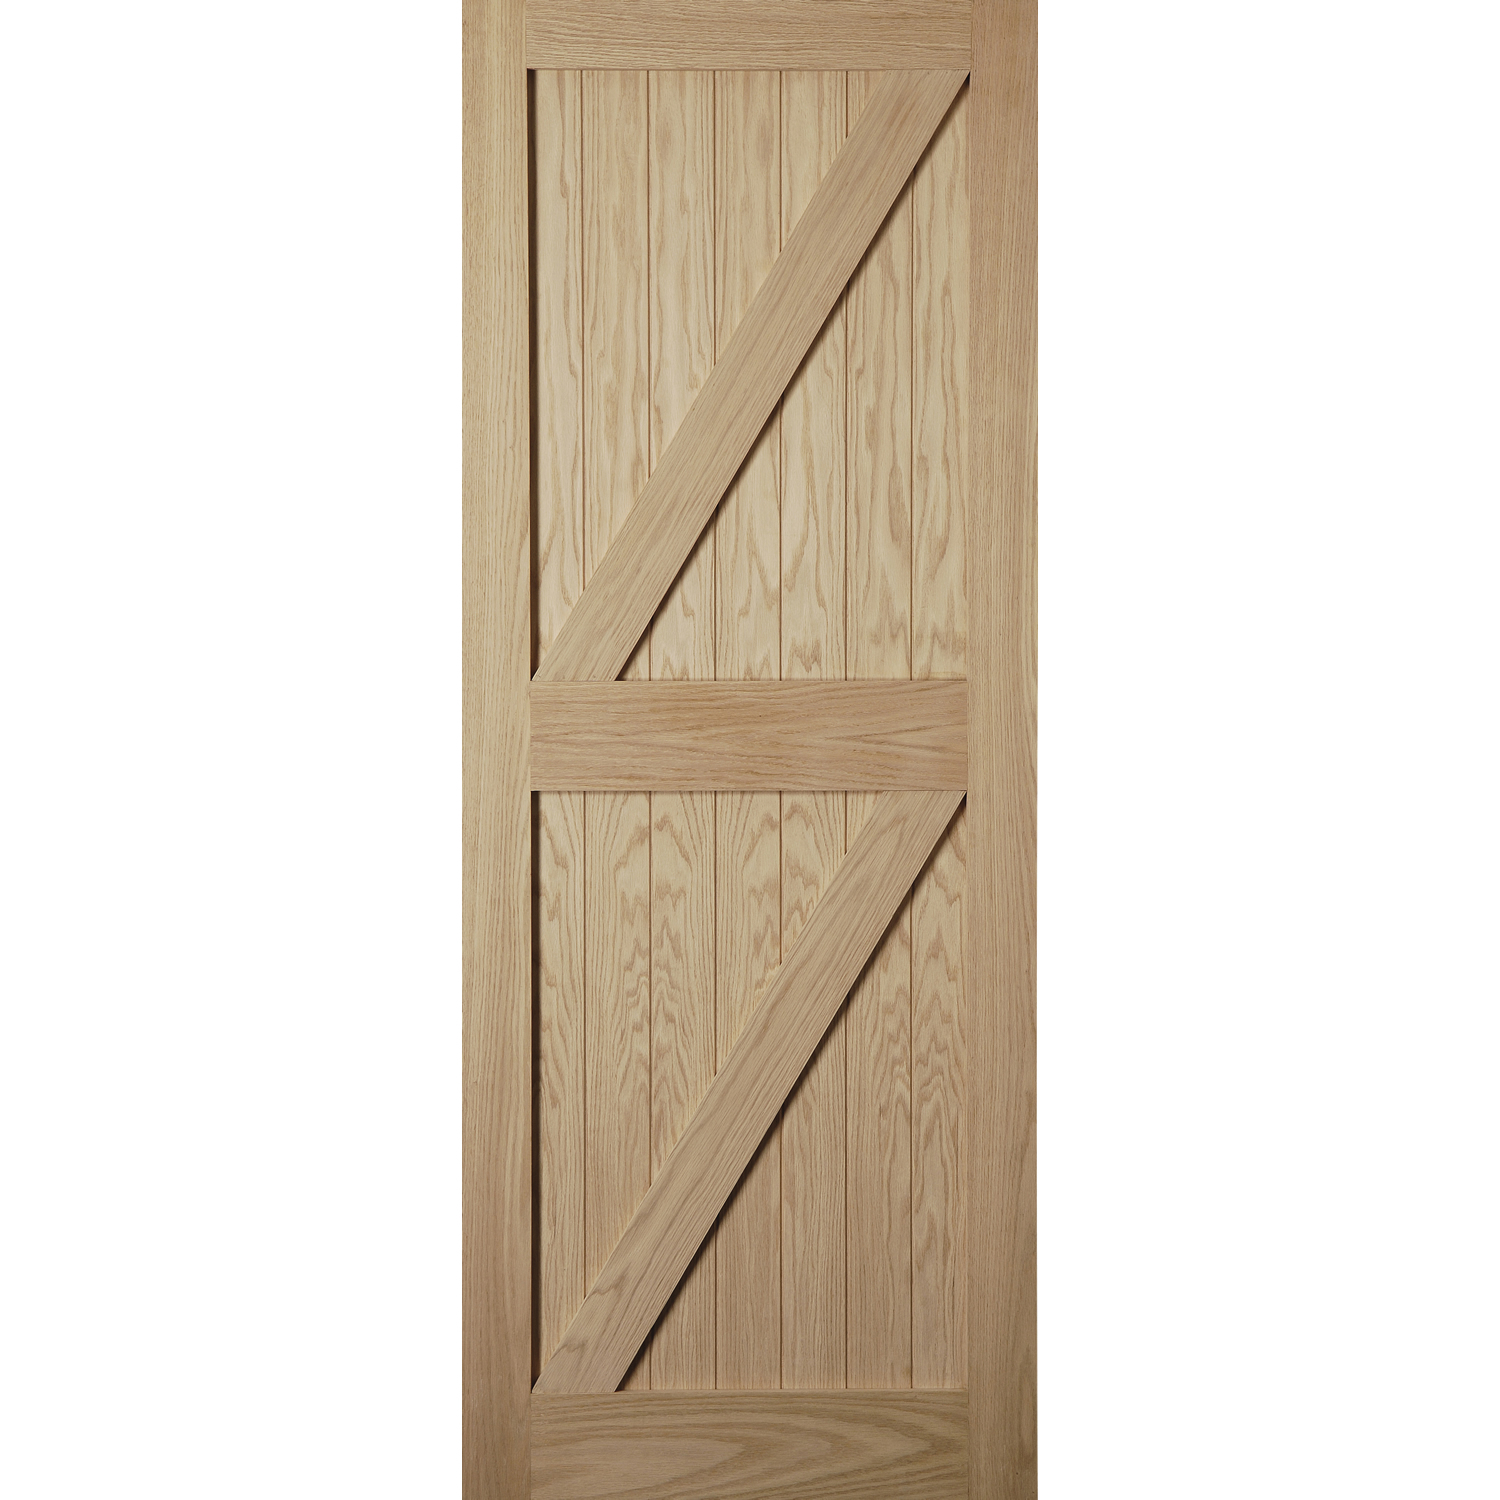 Framed Door Services, Door Services, Tennessee